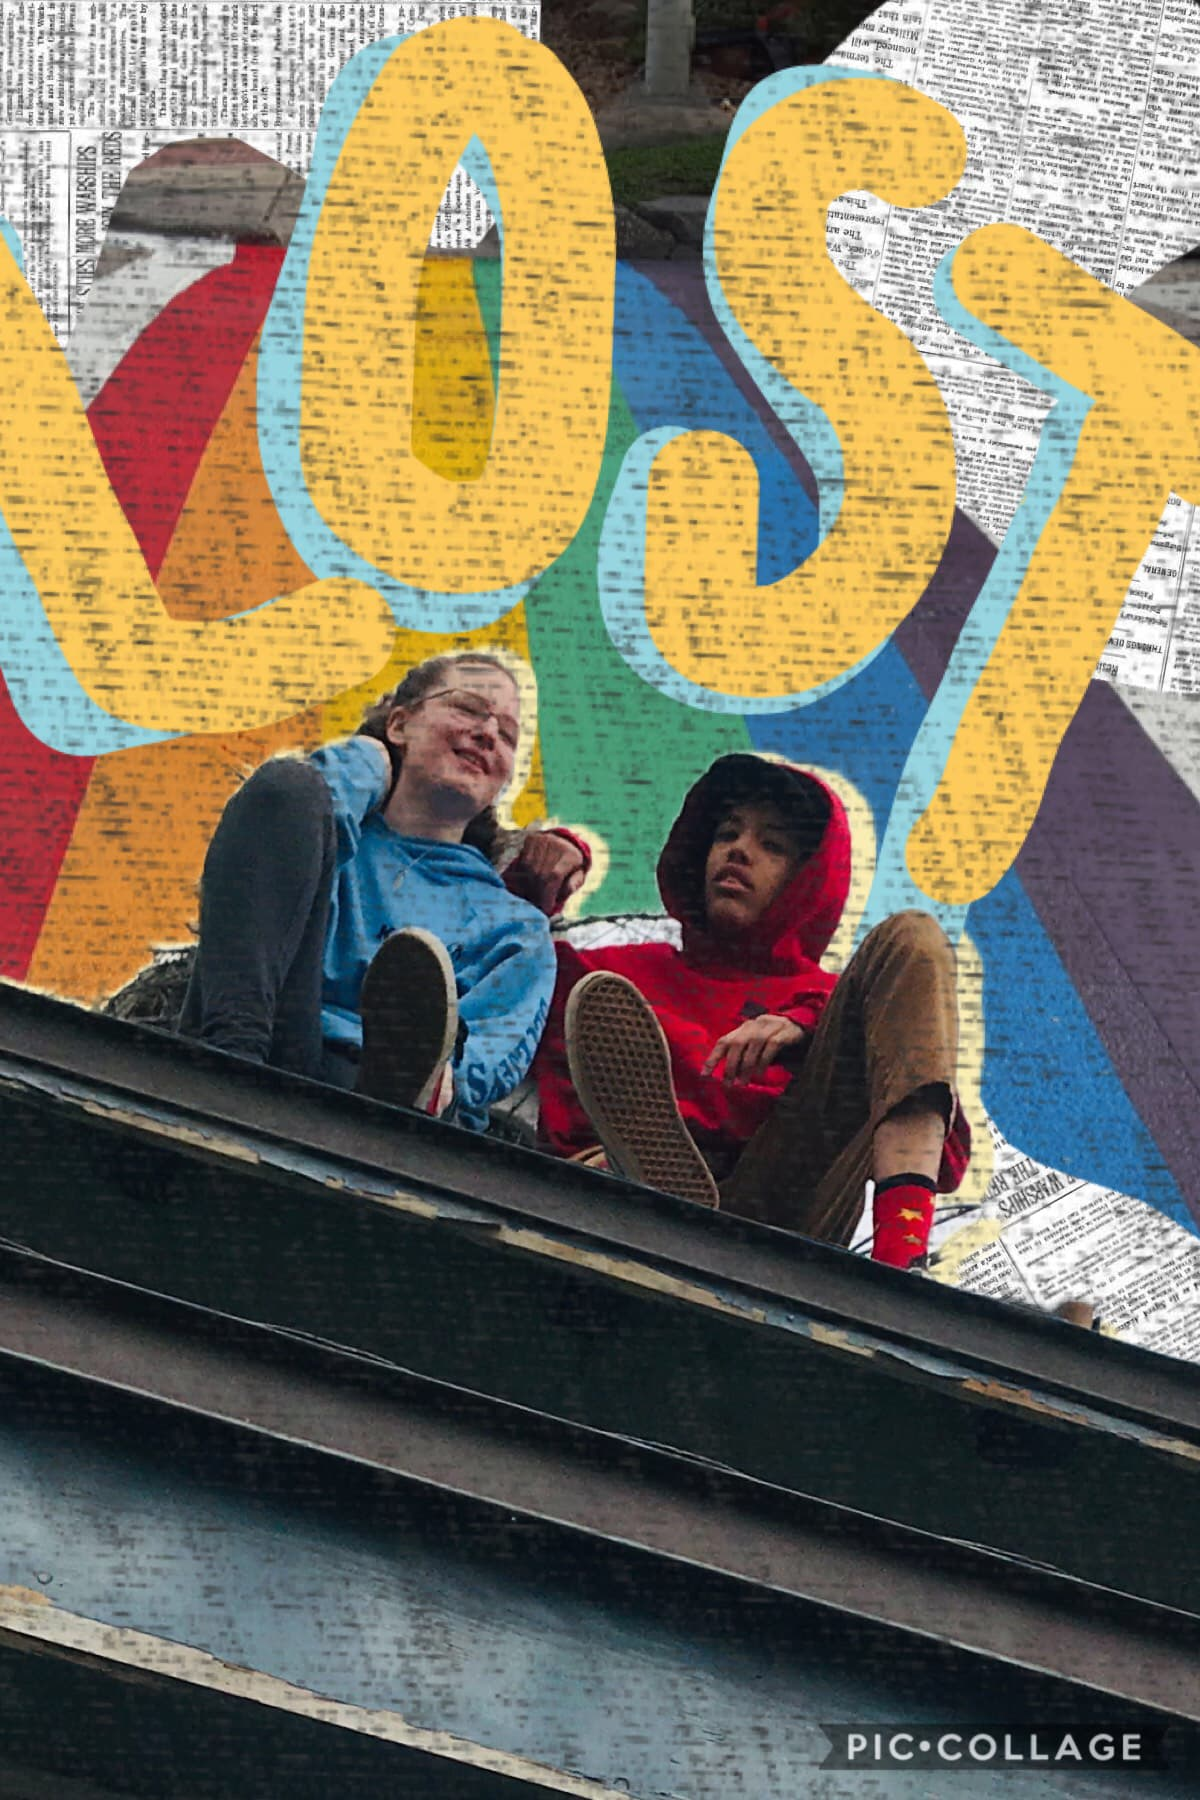 🥖 h e y 🥖 remember how i thought i was leaving pc? IM BACKKK here's a funky edit for y'all  this is actually a pic of me and my friend sitting on a roof (be safe kidders) im the red boyyy 👉😎👉    🦵🦵